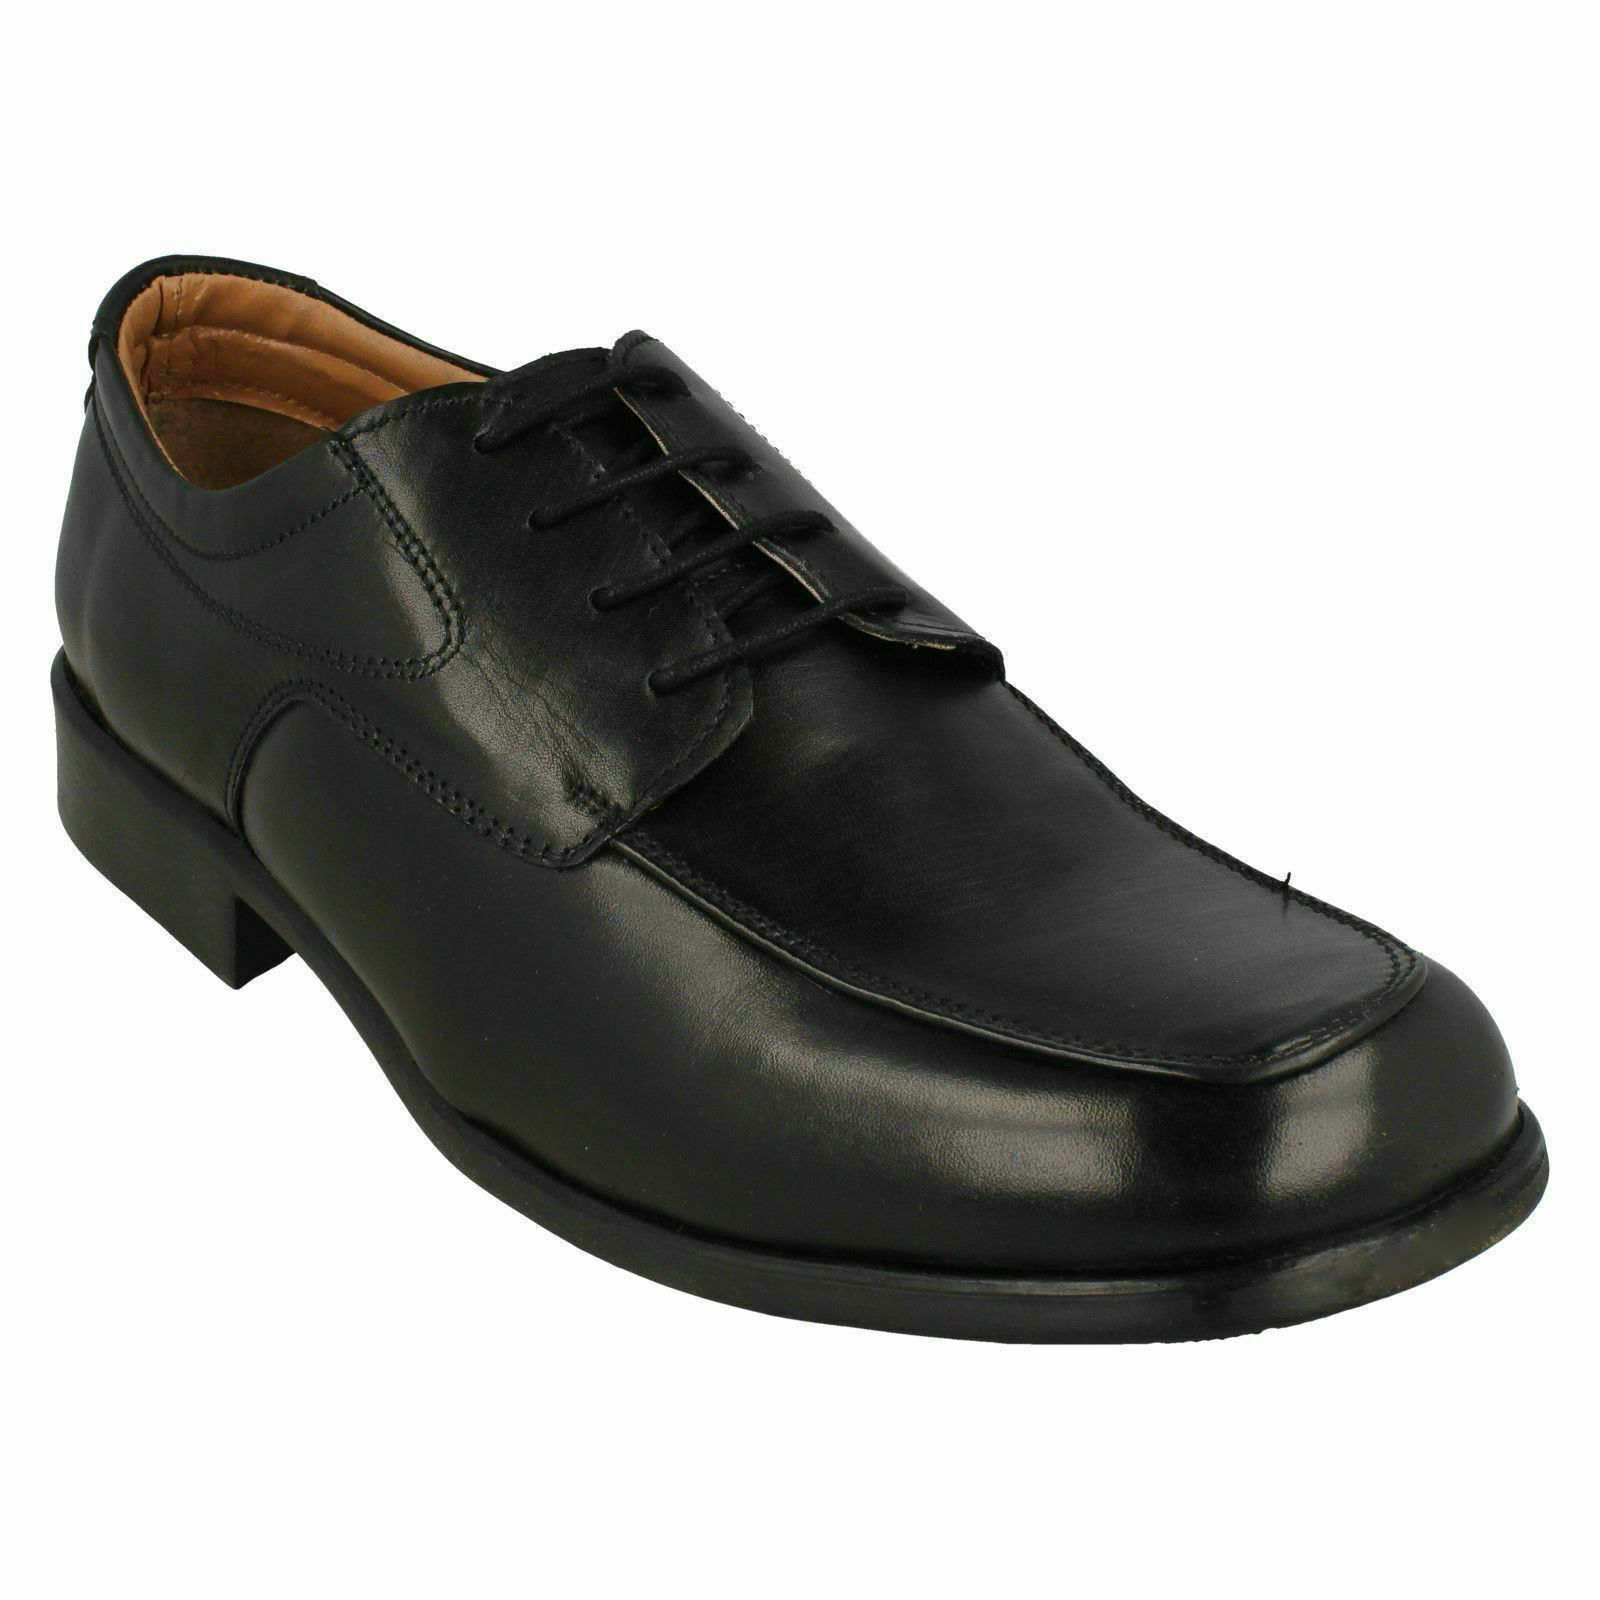 CHALK FARM CARAVELLE MENS LEATHER LACE UP OFFICE SMART FORMAL CASUAL BLACK SHOES